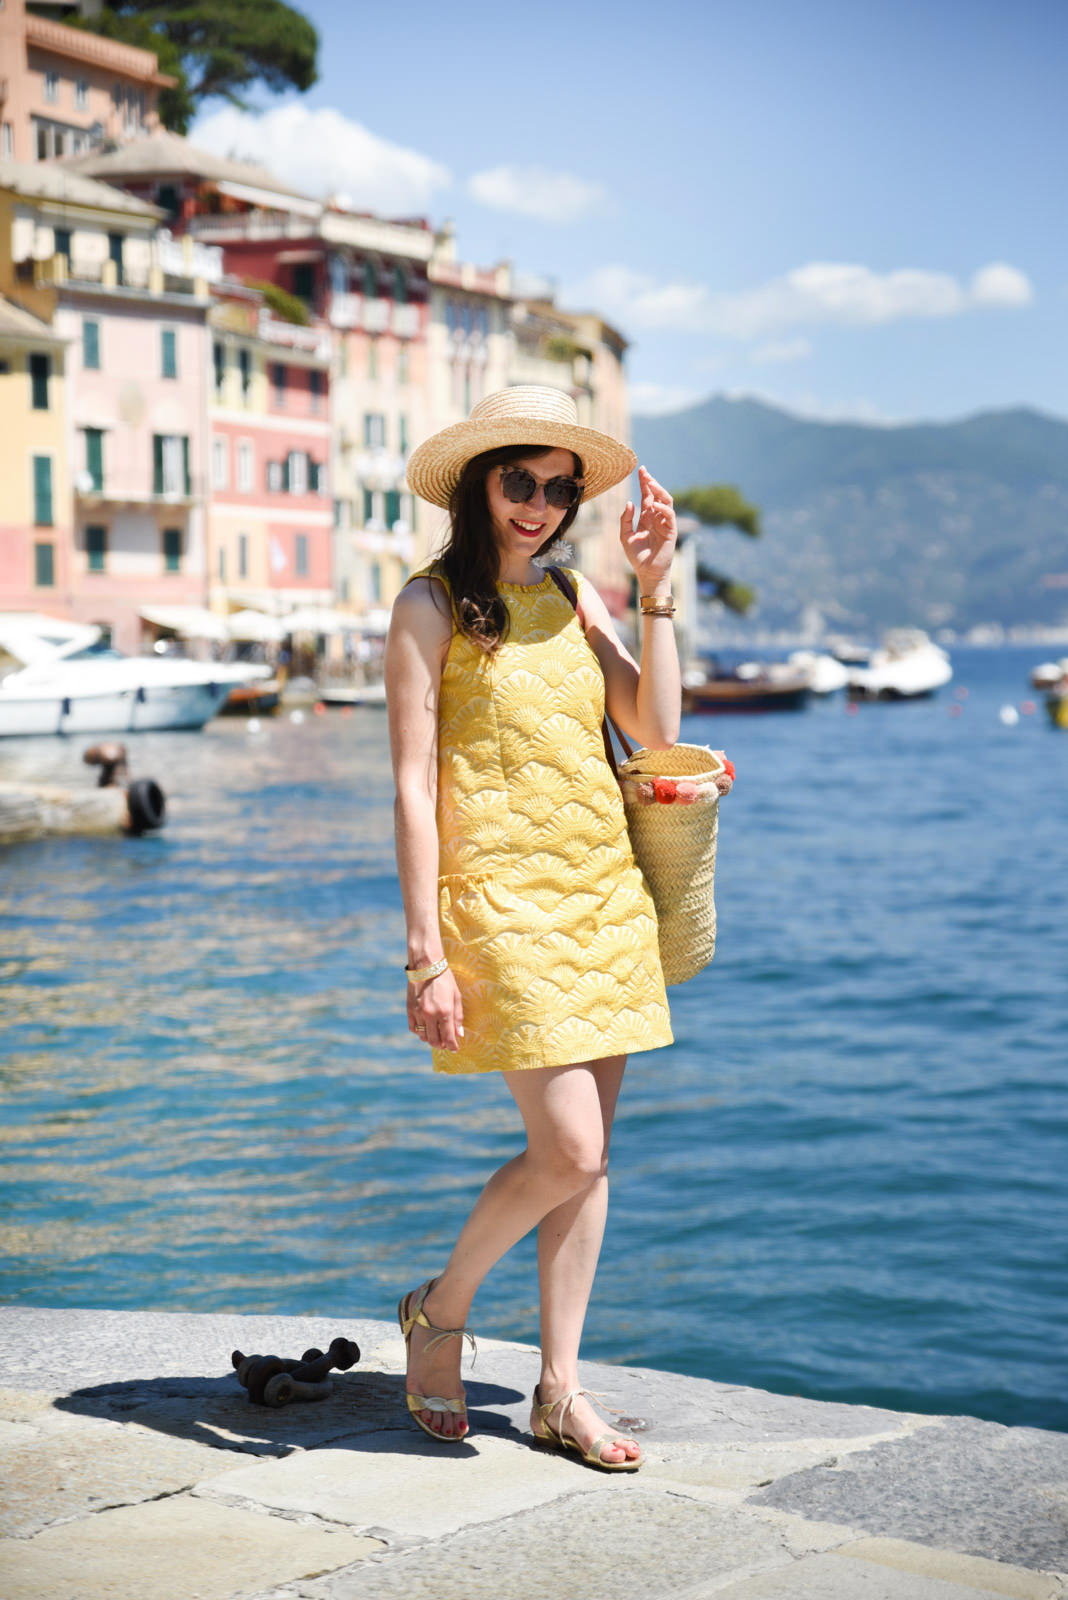 Blog-Mode-And-The-City-Lifestyle-Italie-Portofino-Belmond-Hotel-15 copie